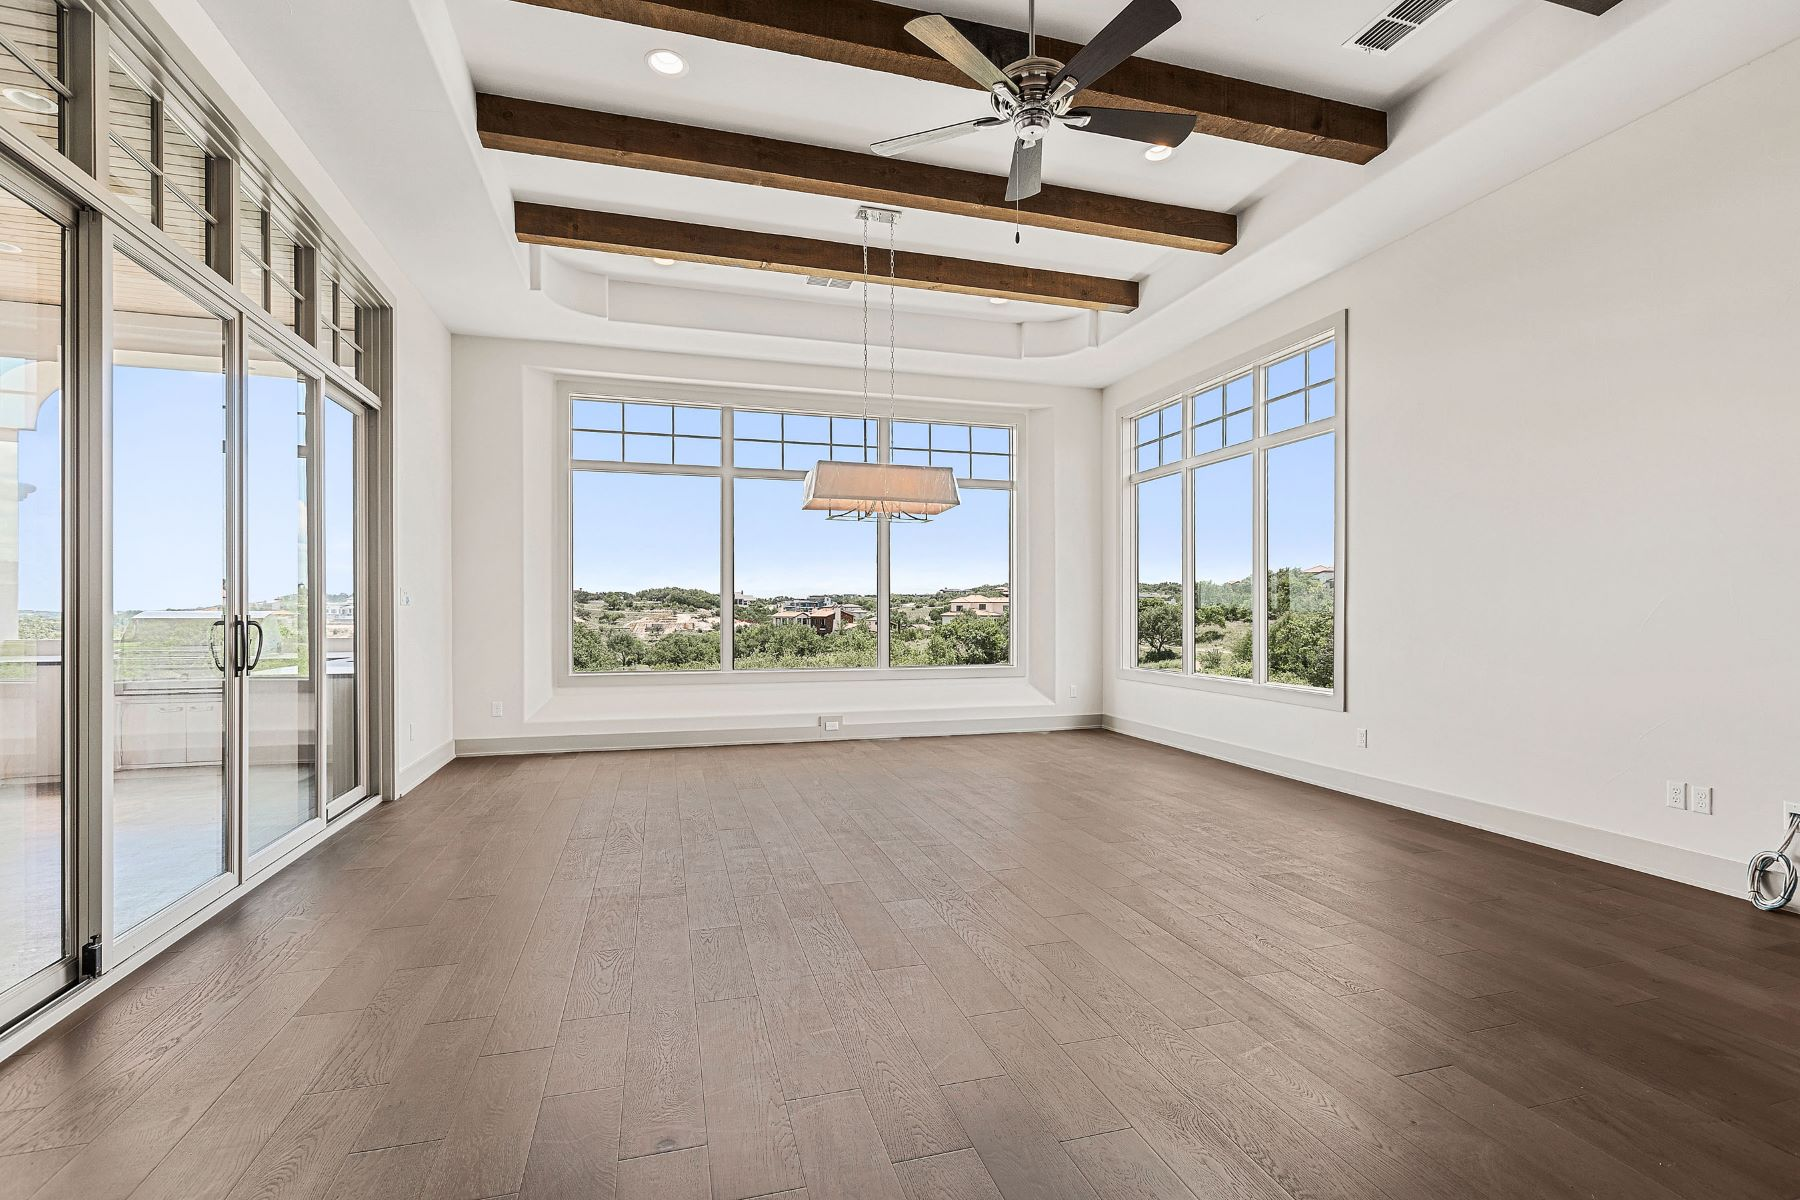 Additional photo for property listing at Breathtaking Golf Course Views 12908 Hacienda Ridge Austin, Texas 78738 United States